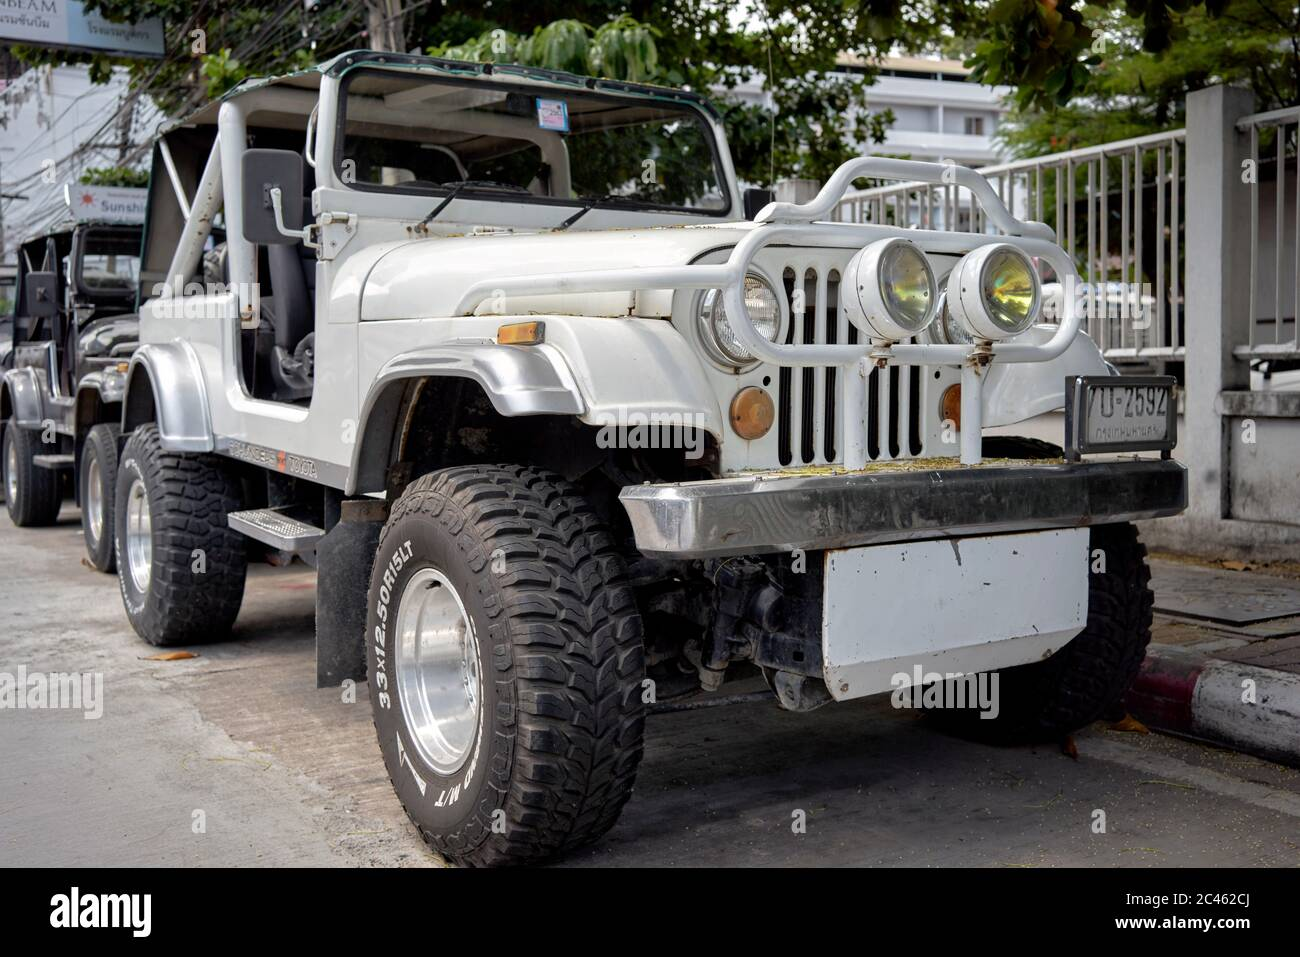 Jeep Wrangler Yj High Resolution Stock Photography And Images Alamy